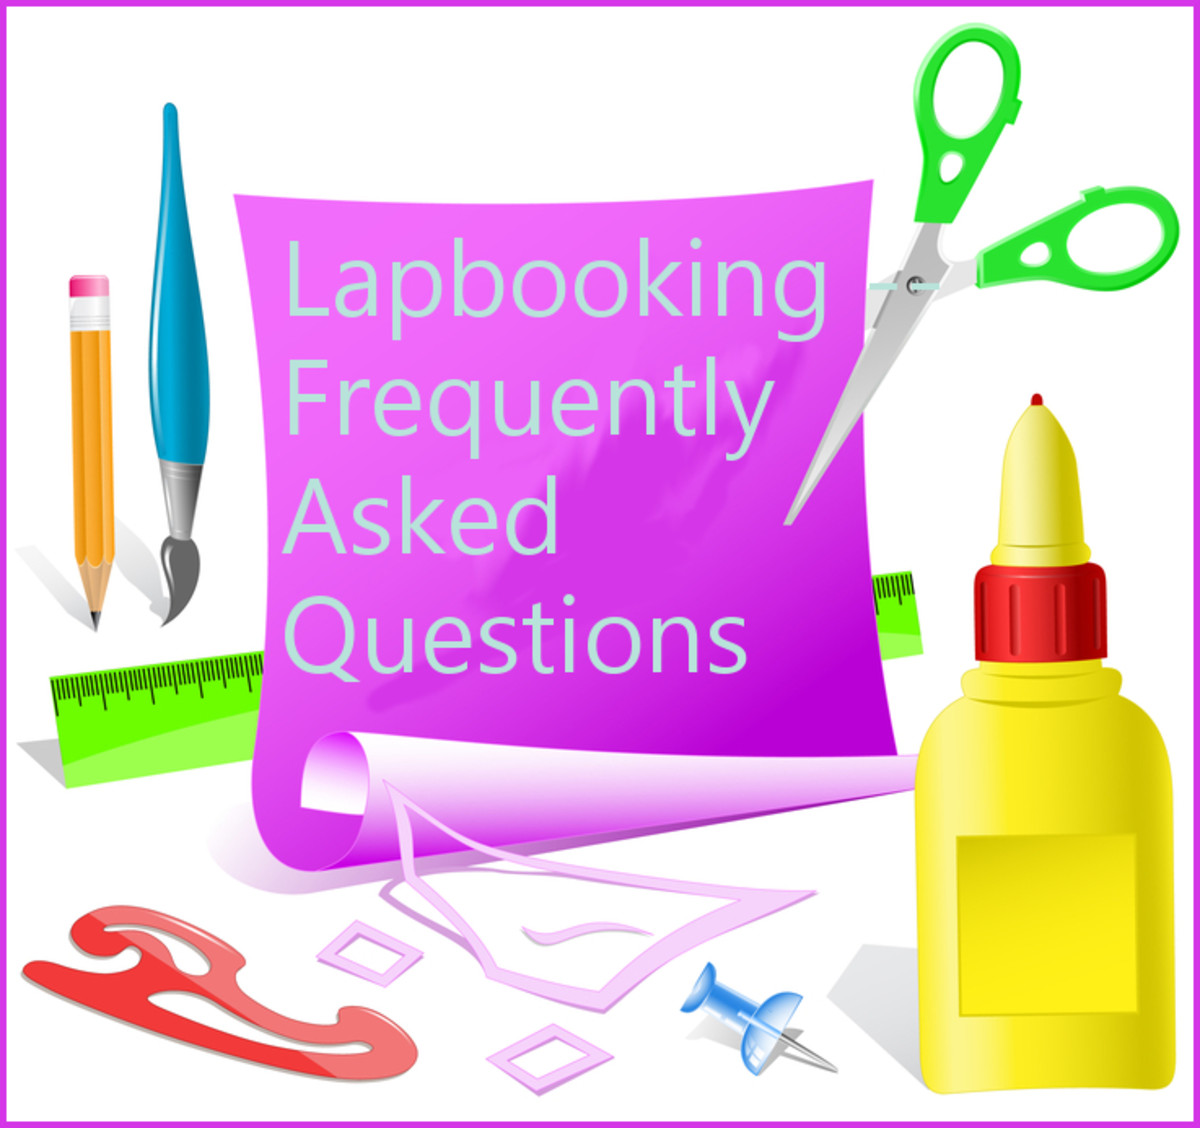 Lapbooking -- Frequently Asked Questions